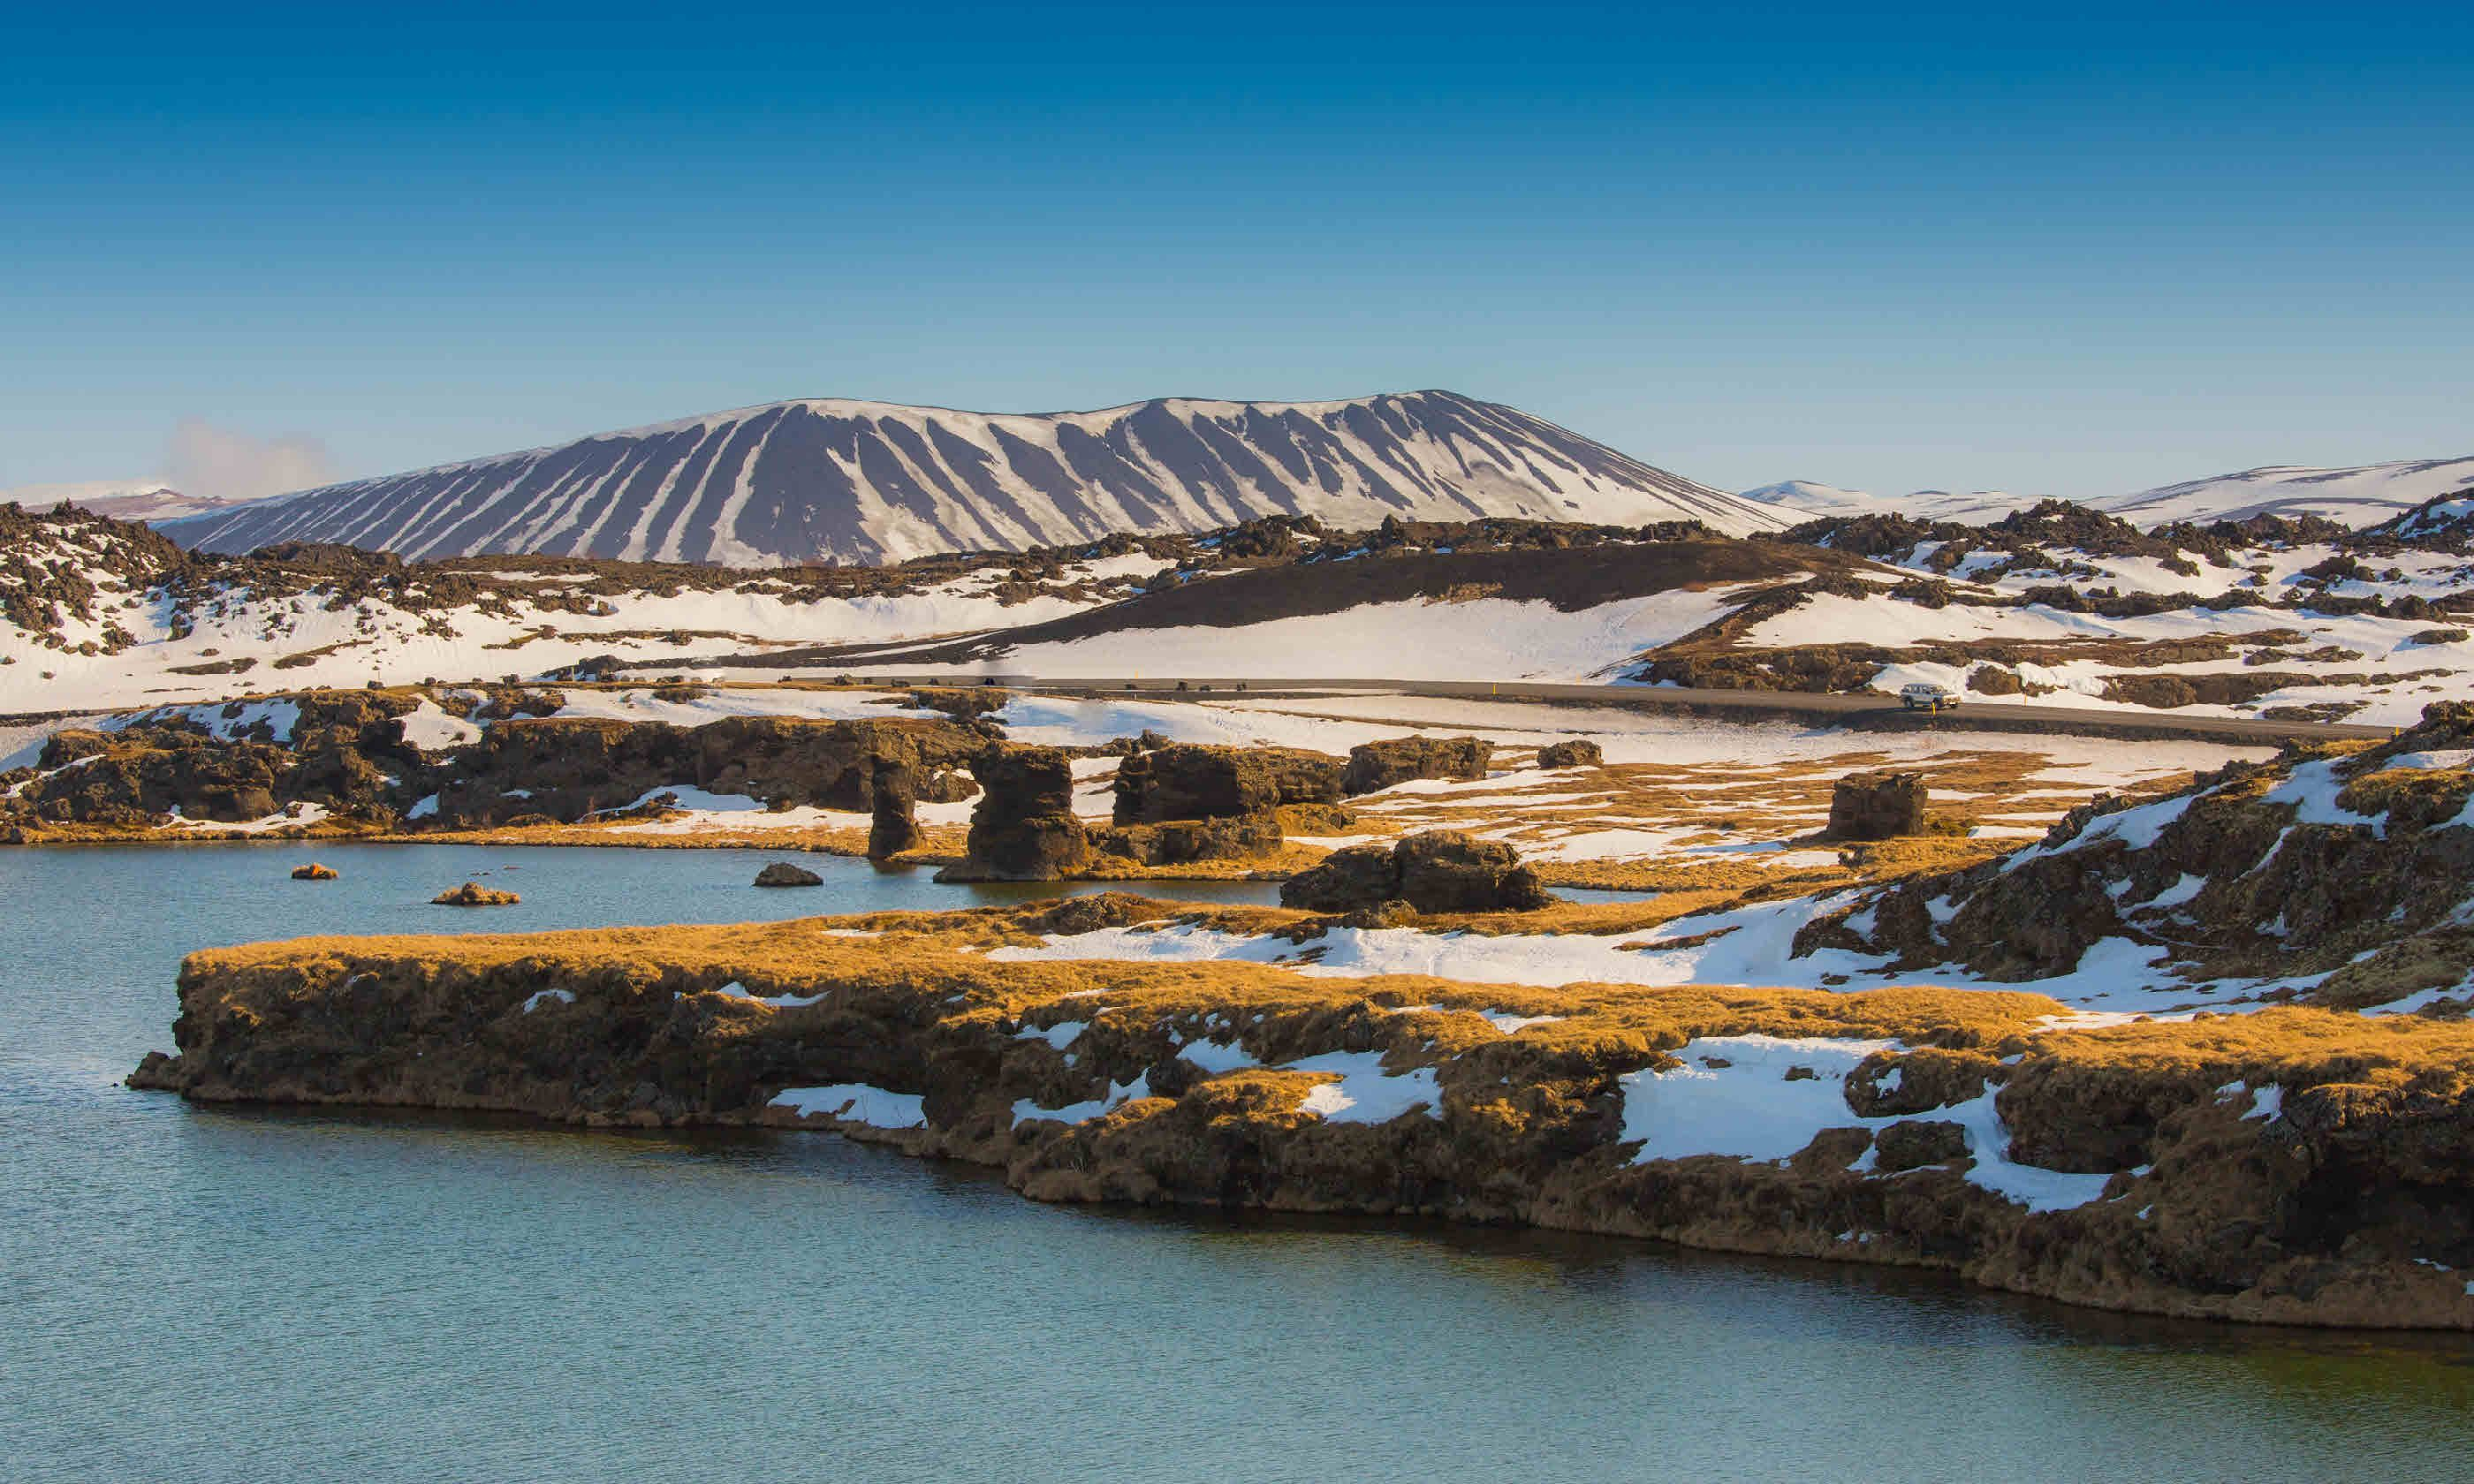 Valcano mount and lake in Myvatn (Shutterstock)